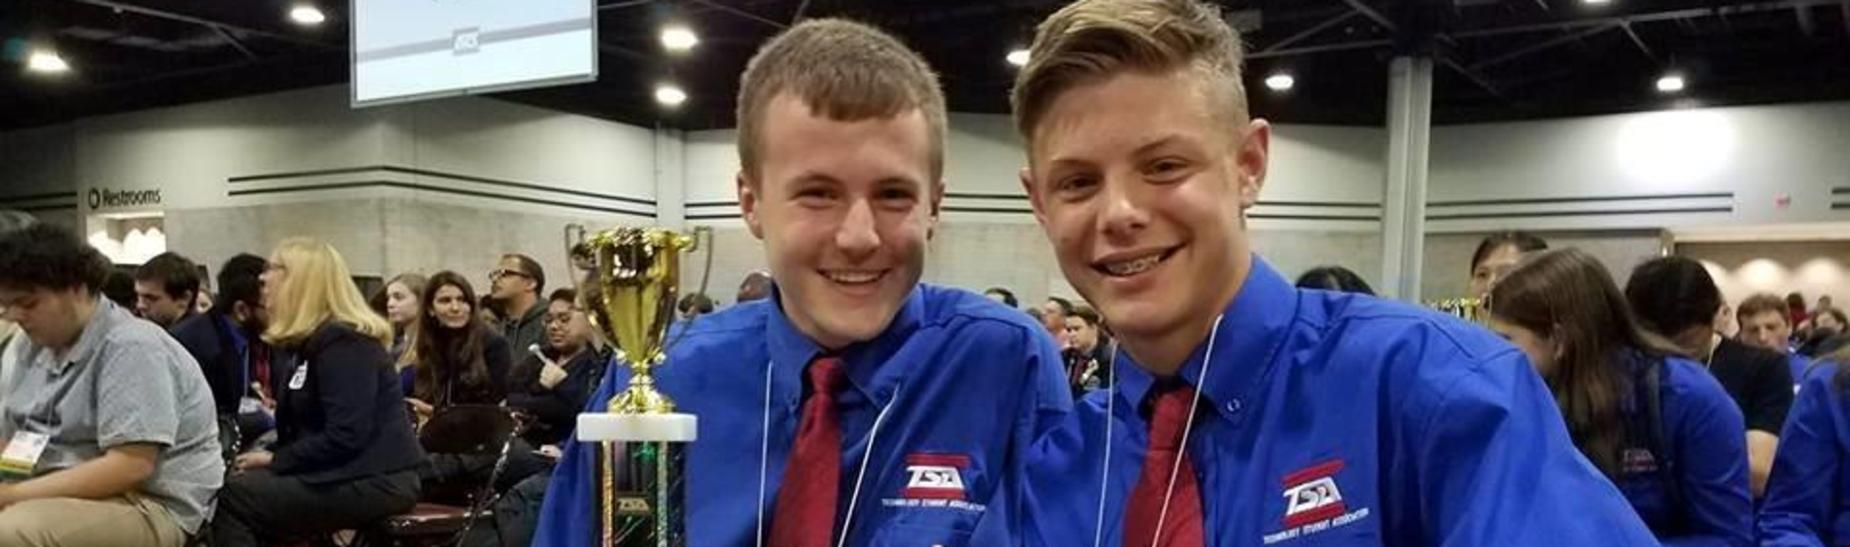 Cayden Wright and Parker Gregg take 1st place at TSA Nationals.  Congratulations!